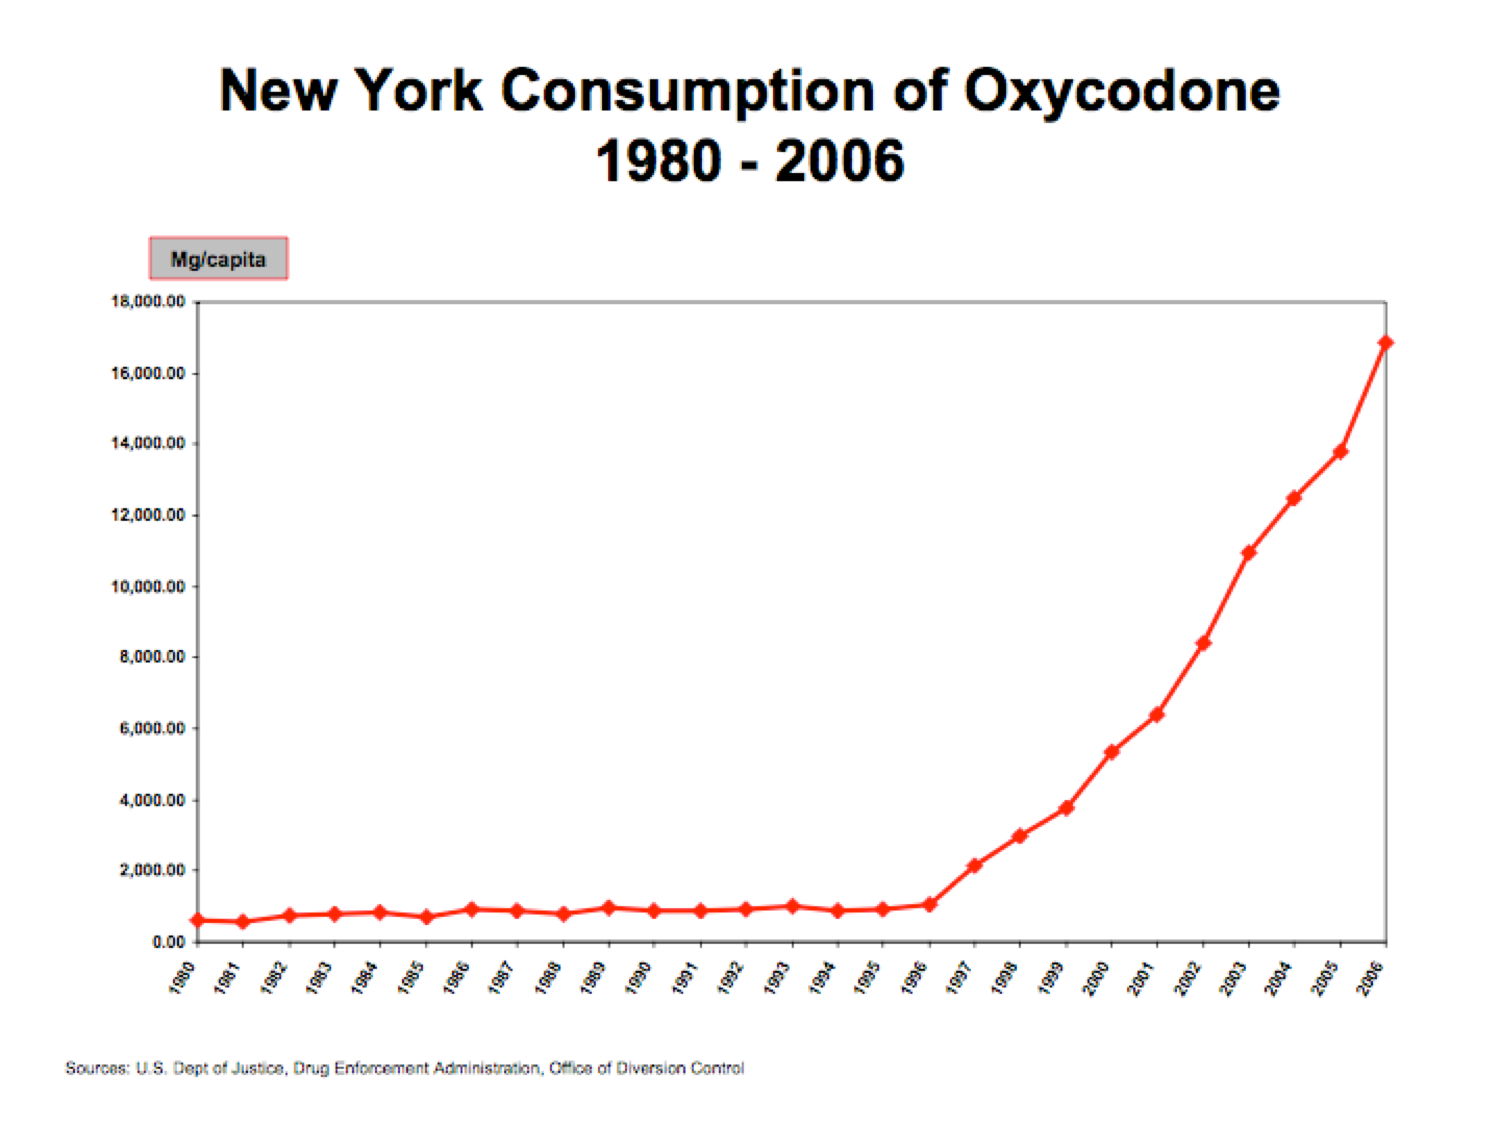 Consumption of Oxycodone